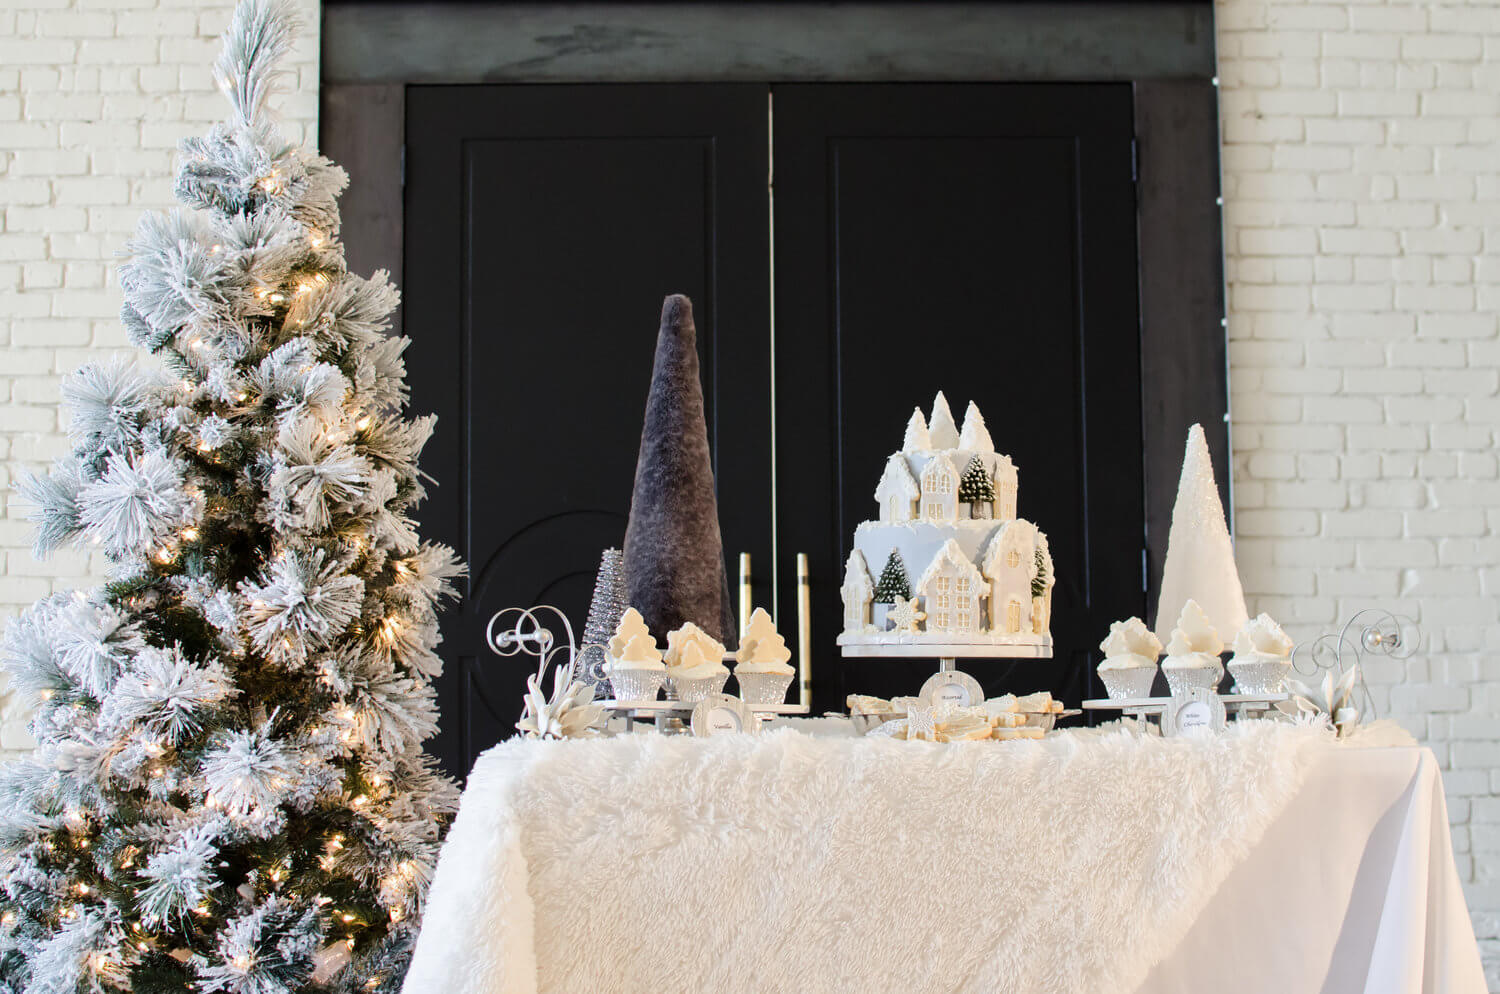 Elegant Winter Bridal Shower Ideas with white and grey. See more from this Winter Wonderland themed Bridal Shower Inspiration created by Mint Event Design. www.minteventdesign.com #winterweddingideas #weddingwedding #bridalshowerideas #winterwonderland